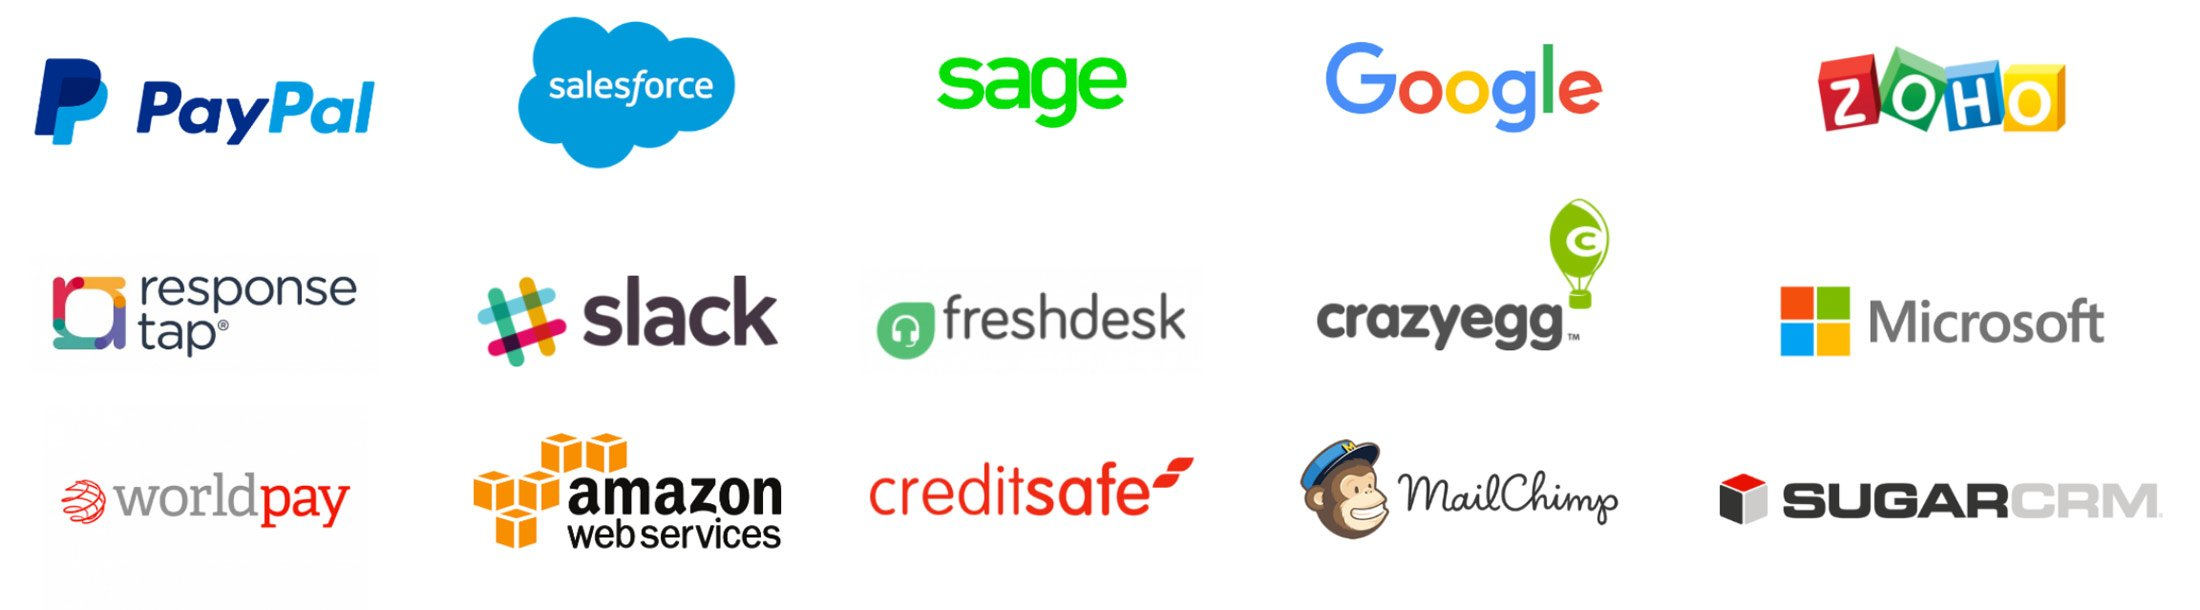 Some brands we work and integrate with